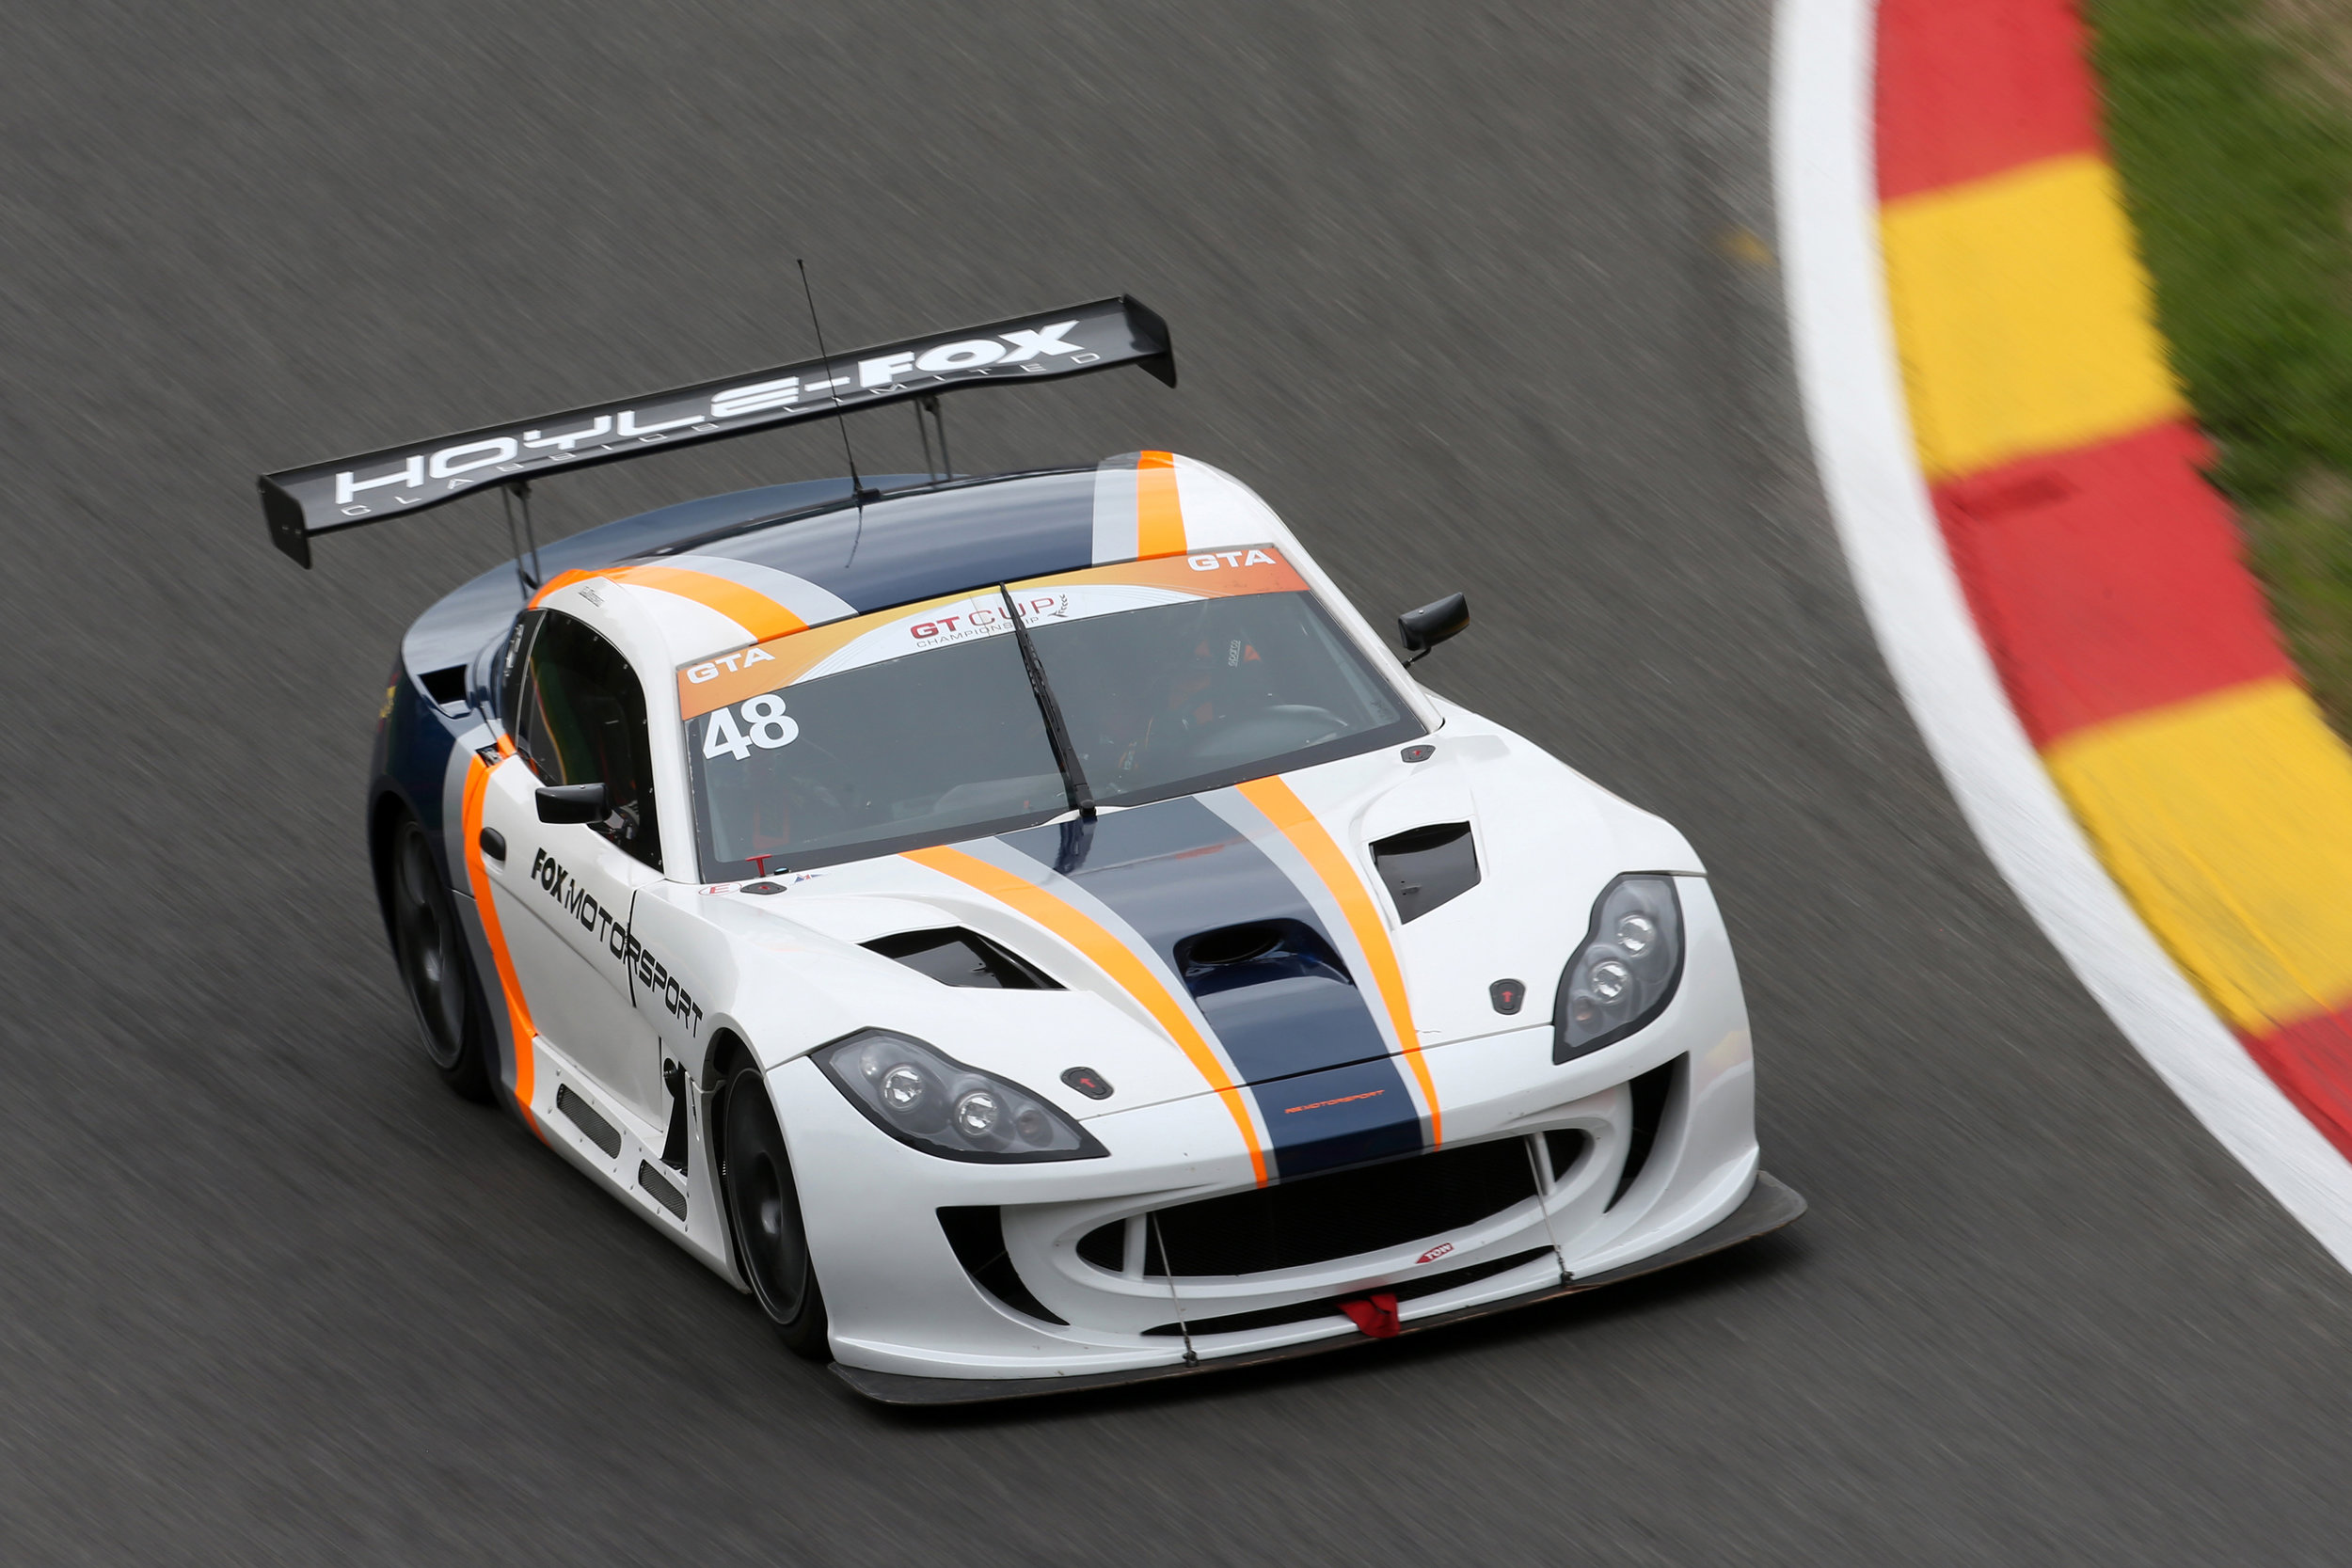 Expect to see the Ginetta G55 at every 2019 Greystone GT event